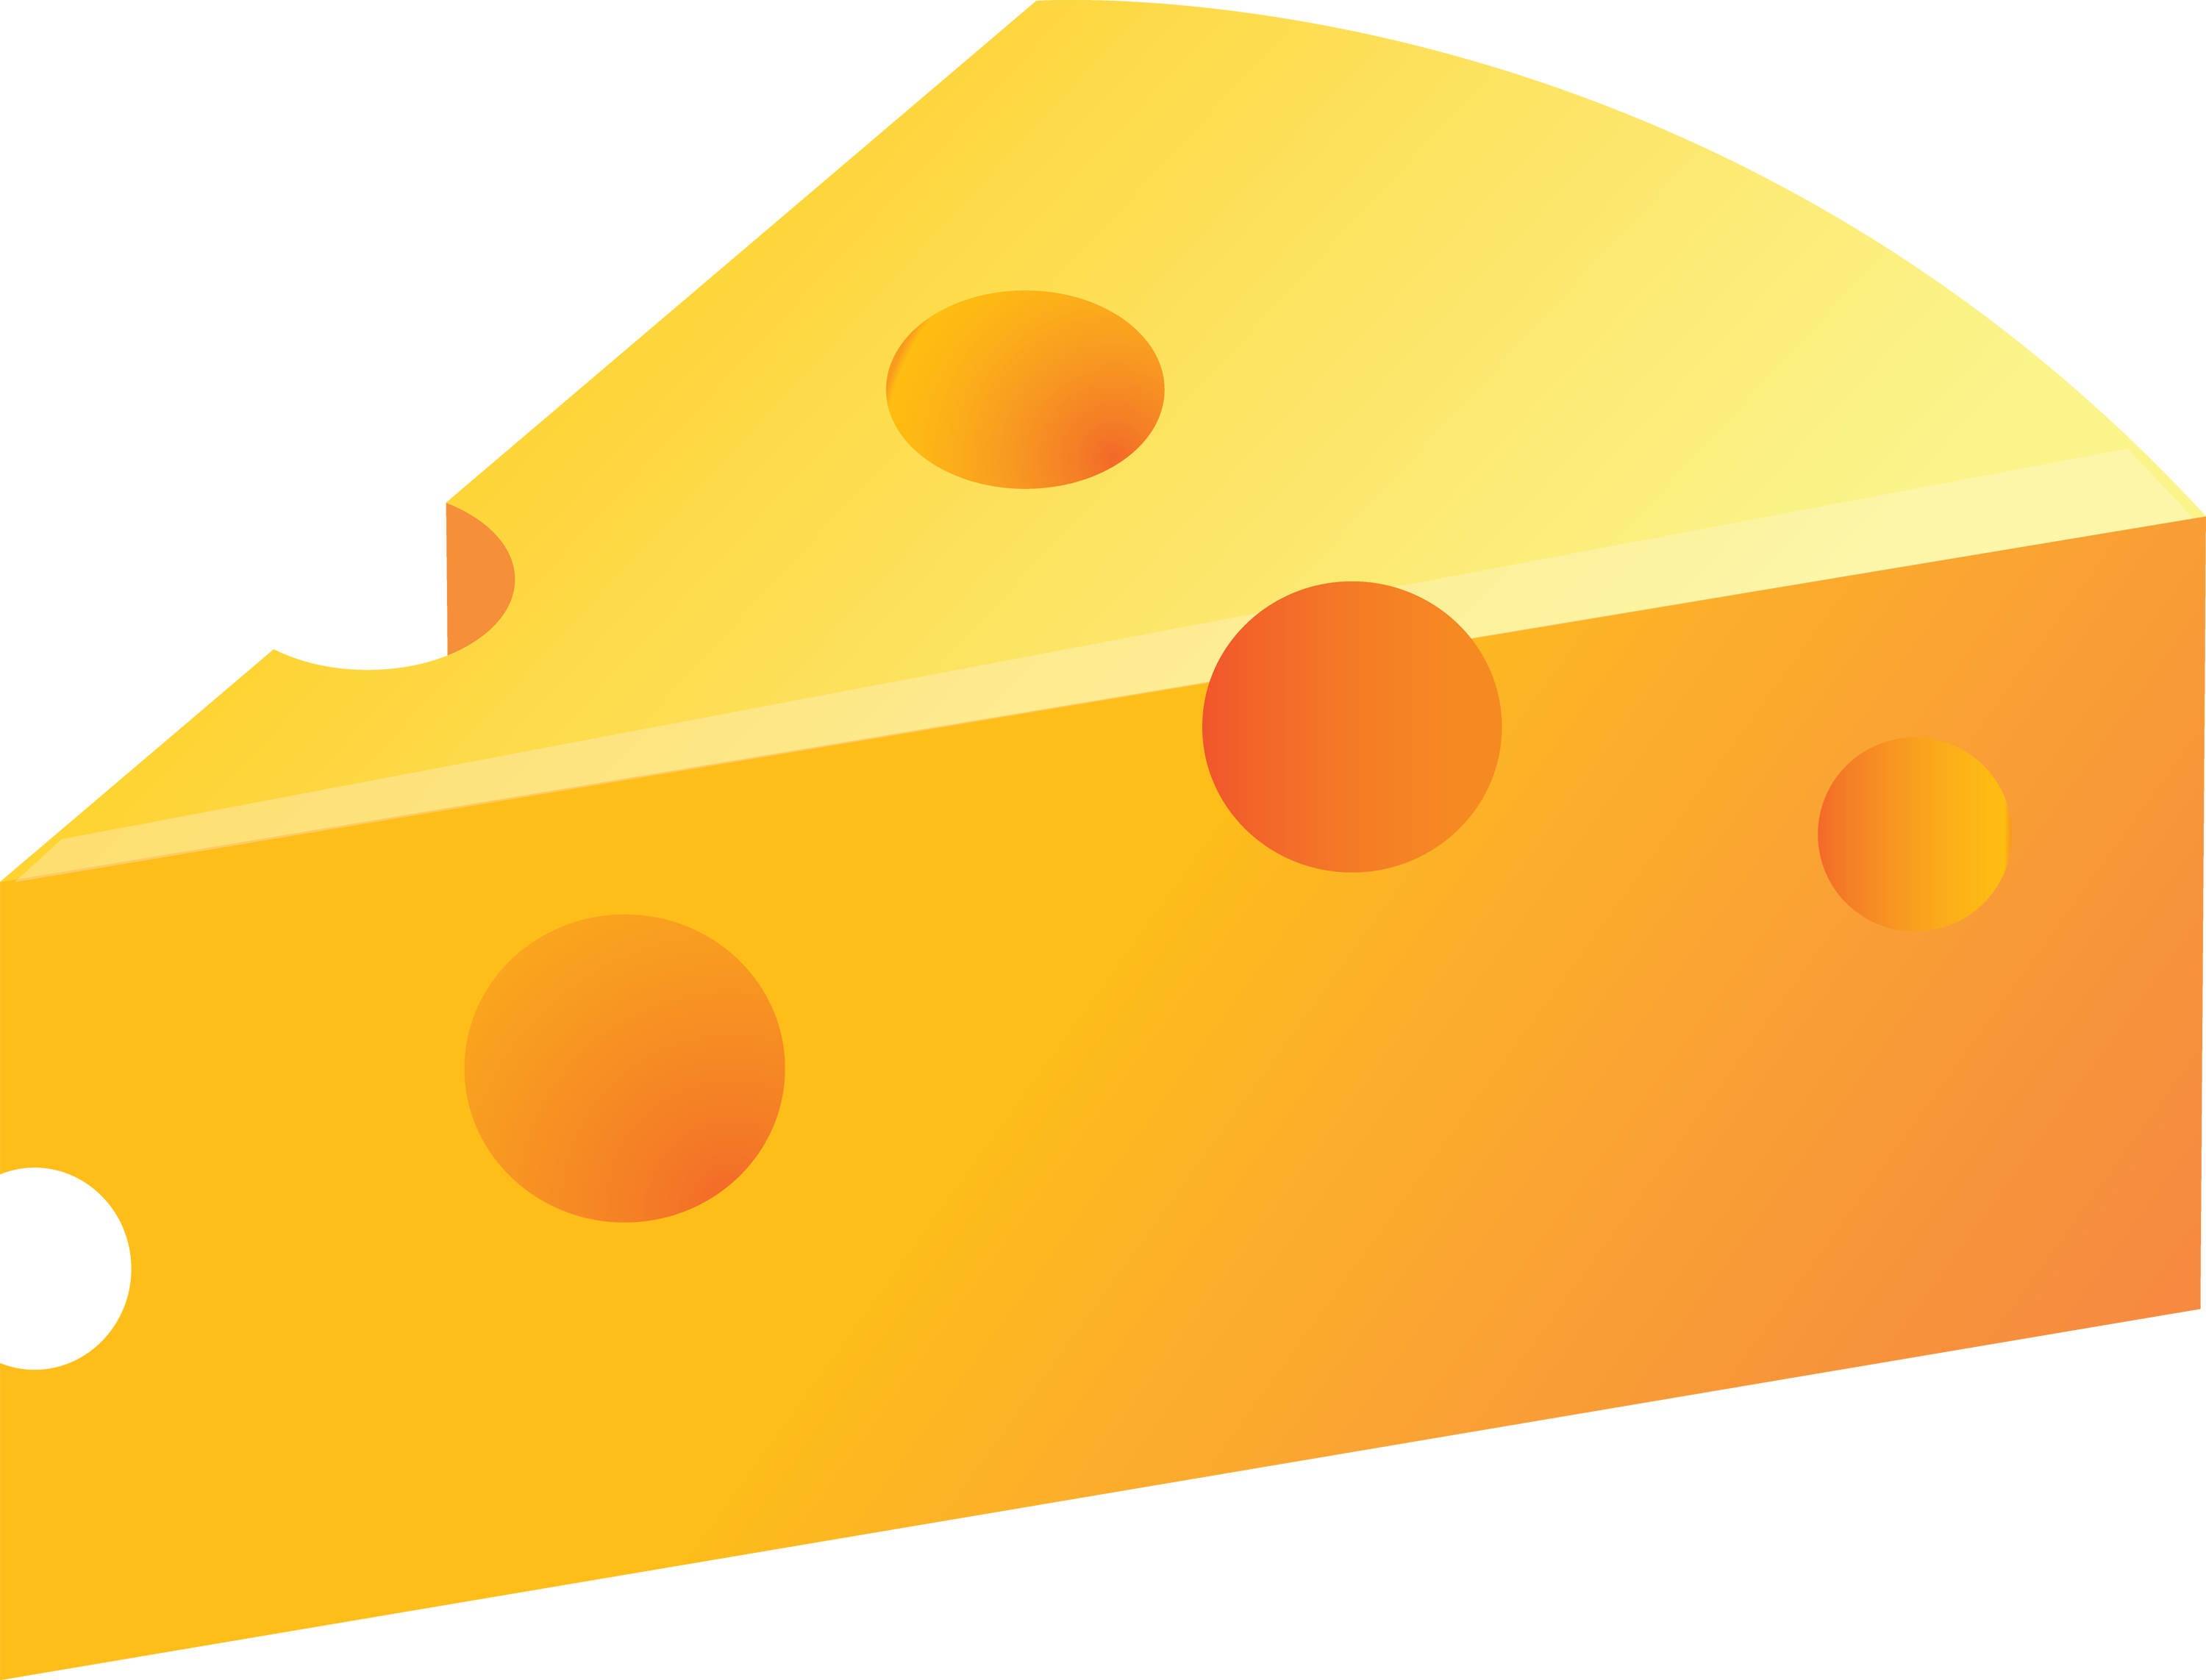 Cheese transparent png file. Kite clipart clear background